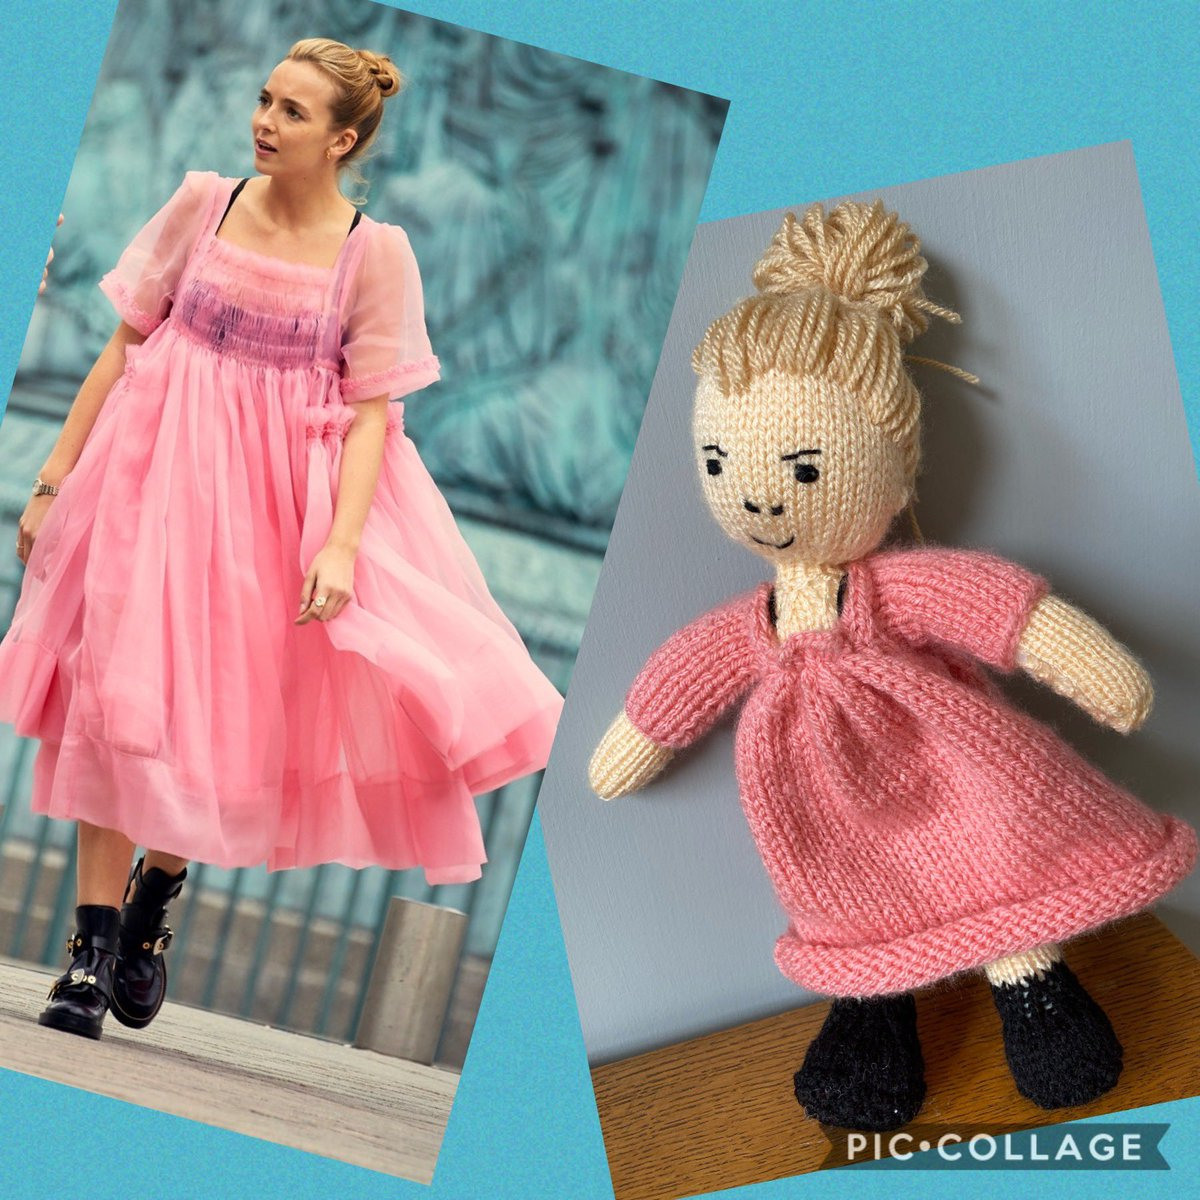 @BBCTheOneShow I knitted Vilanelle from Killing Eve during lockdown #crafting pic.twitter.com/VeCPSx8NhU